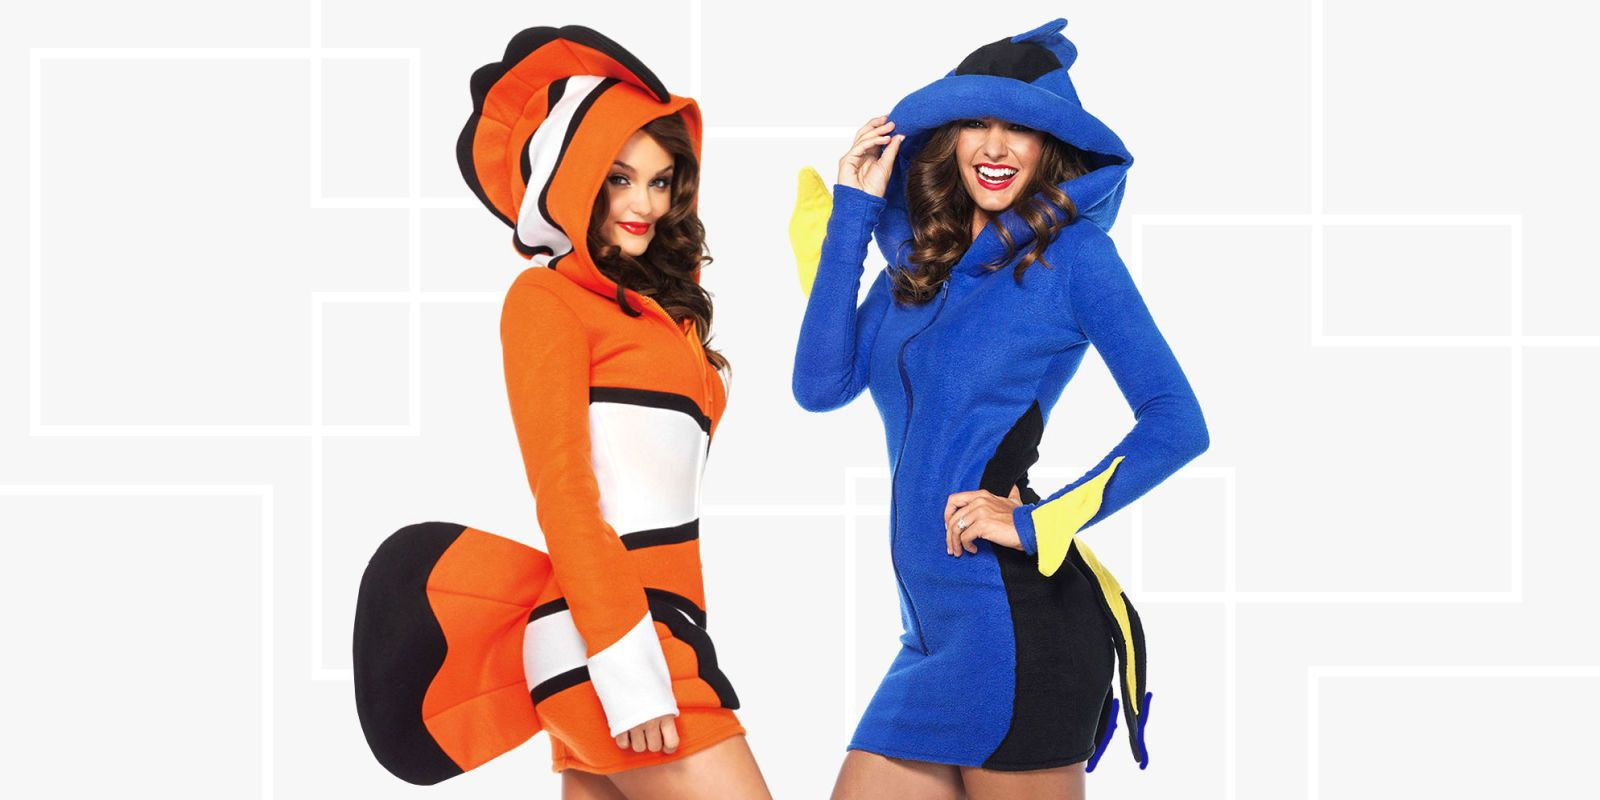 couples halloween costumes  sc 1 st  BestProducts.com & 17 Best Couples Costumes for Halloween 2018 - Couples Halloween ...